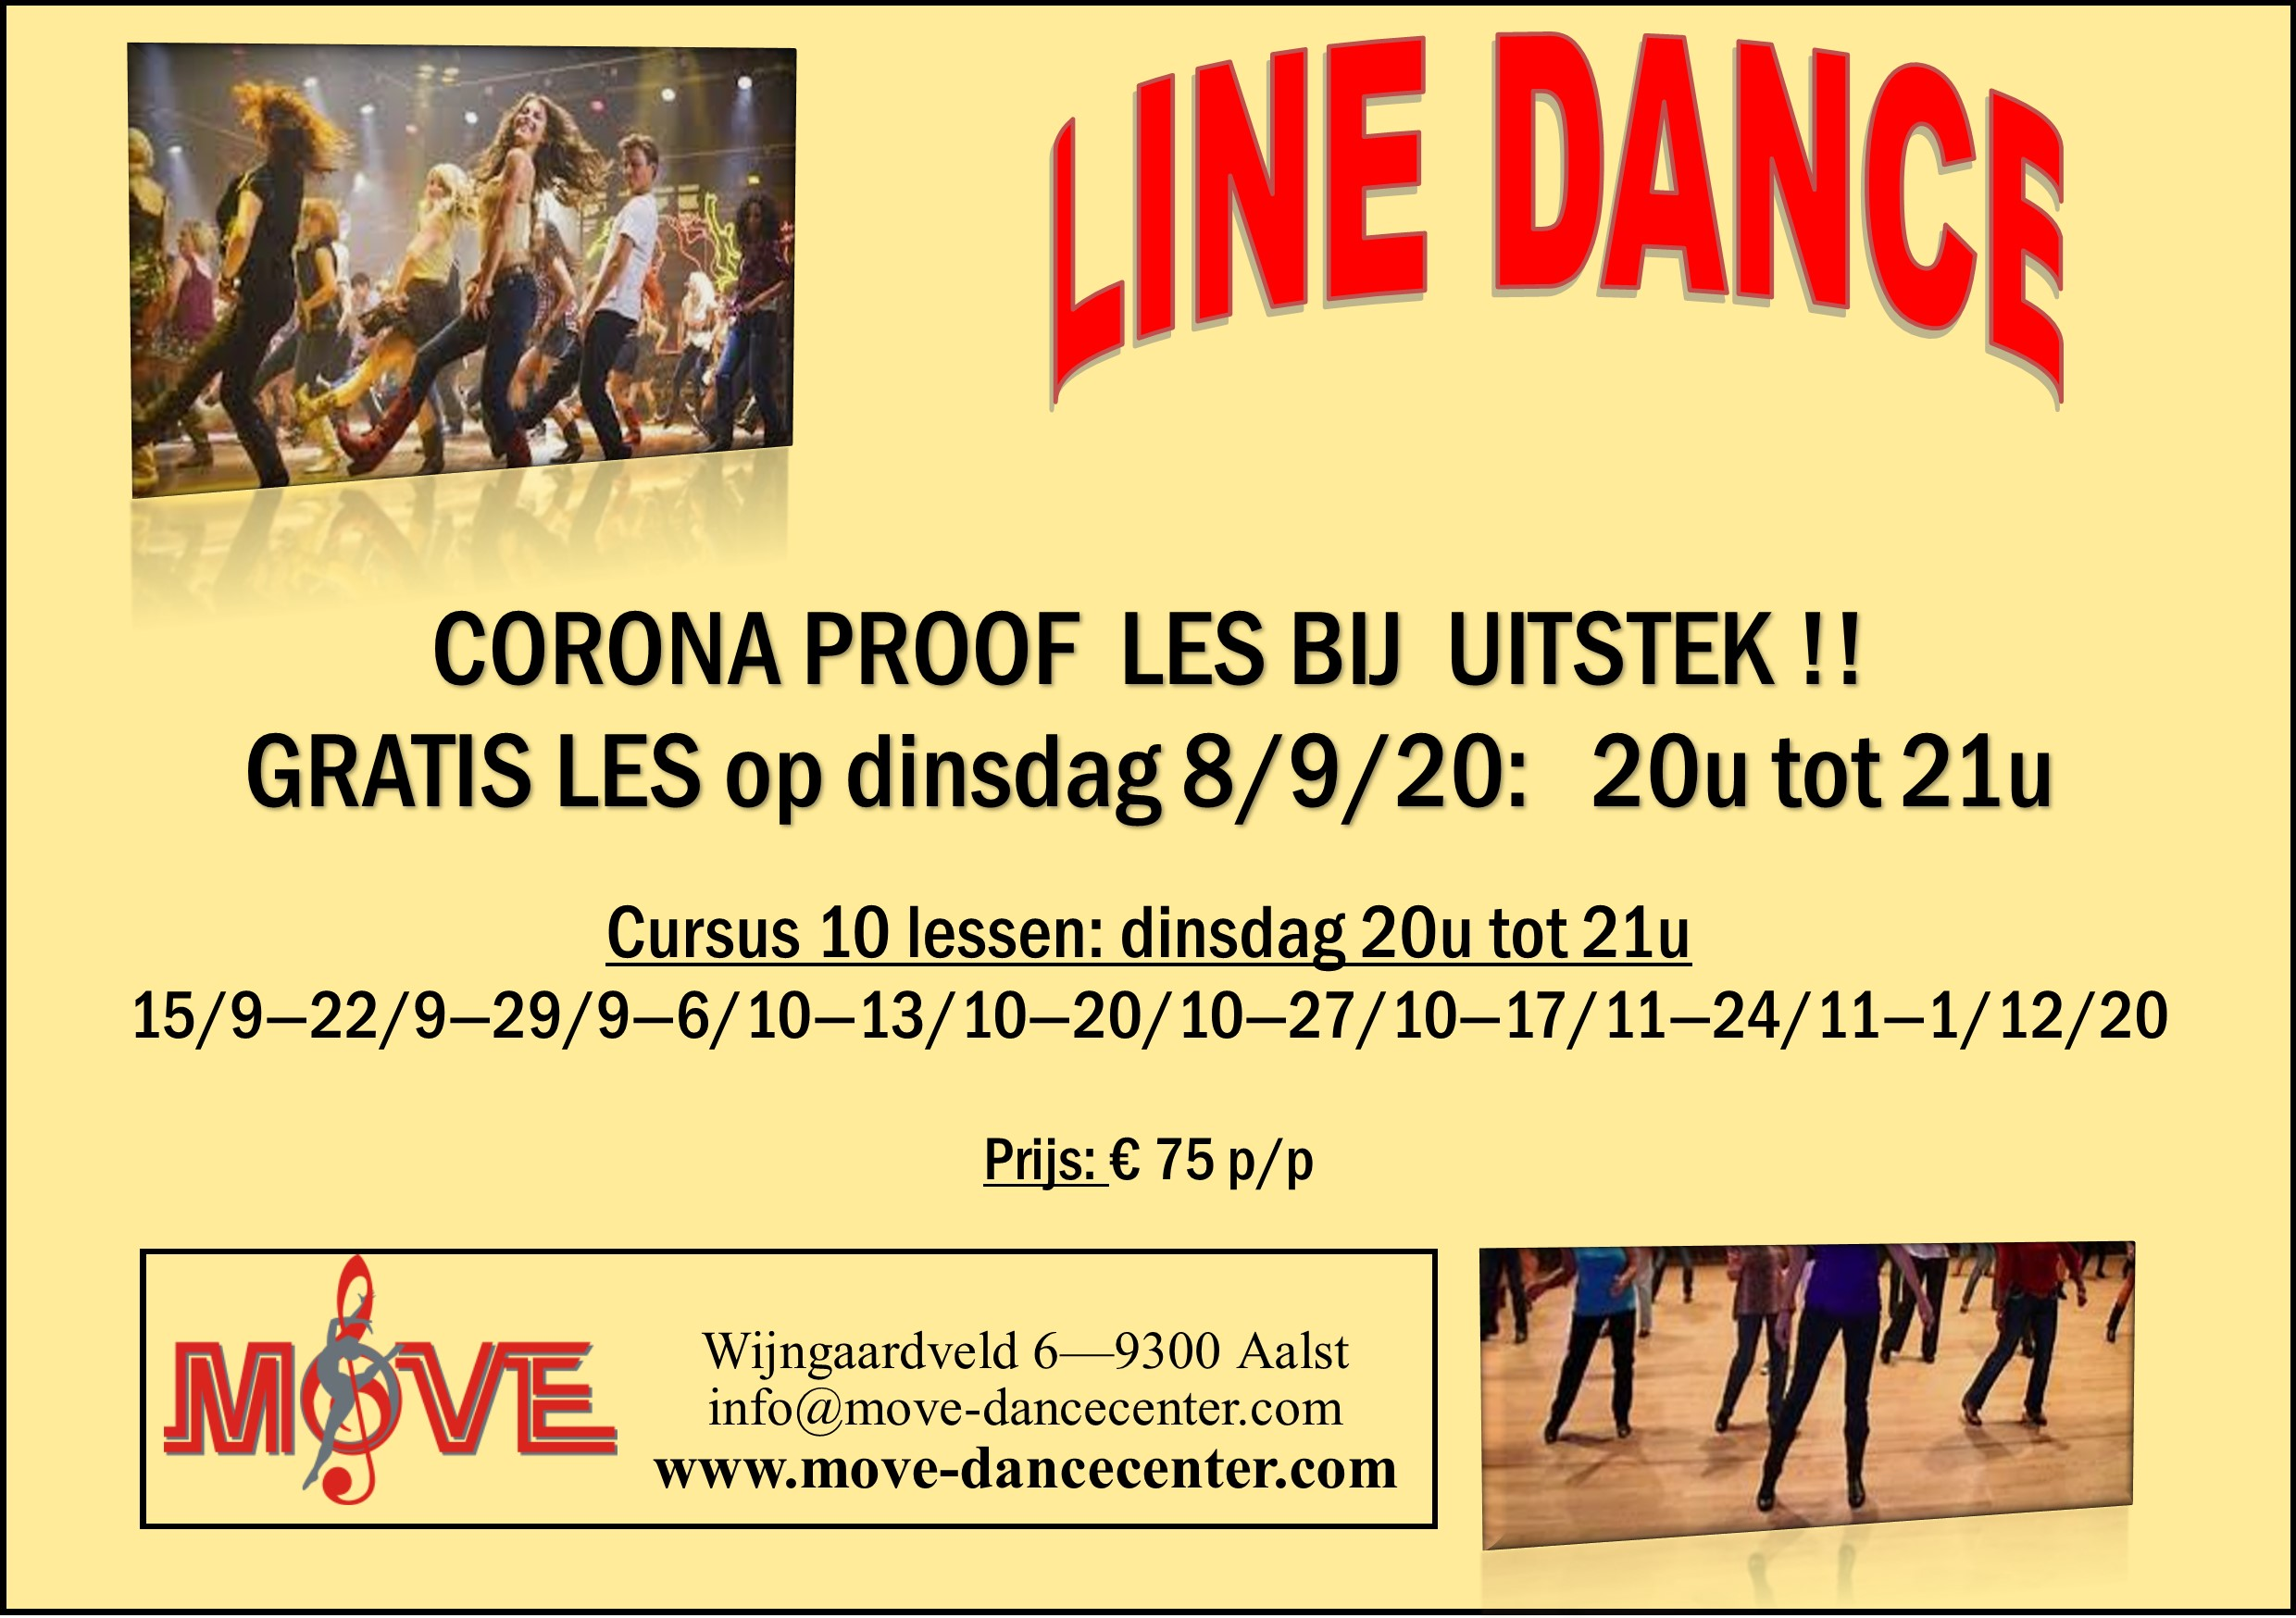 Line Dance liggend facebook sept 20